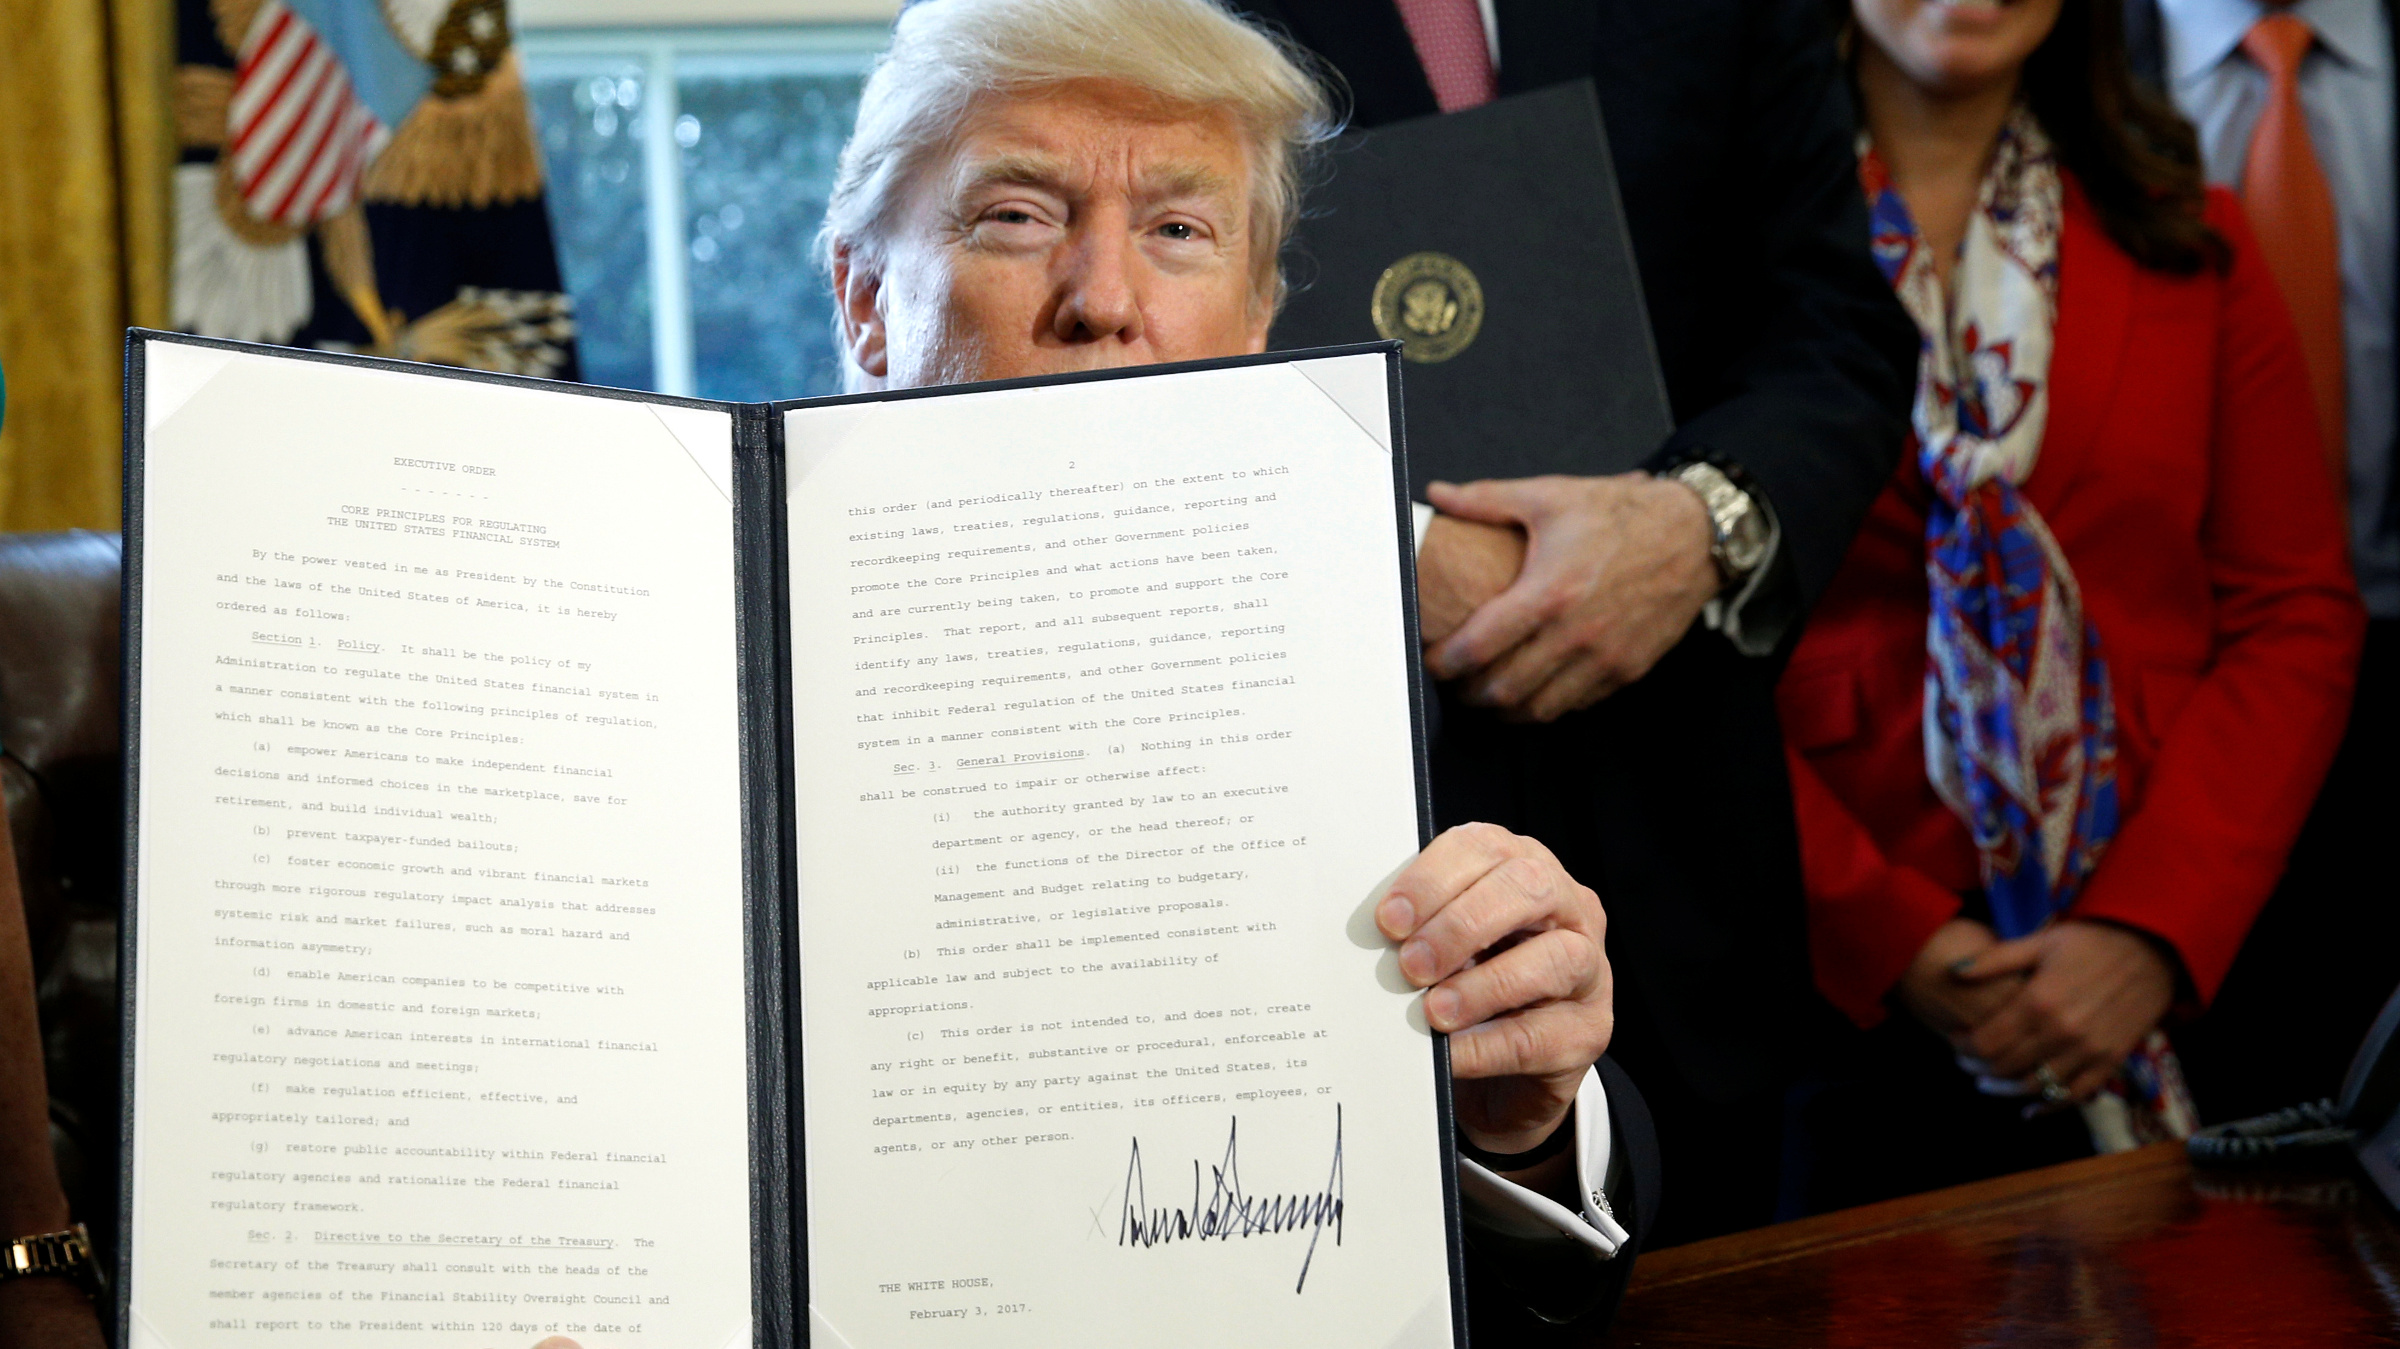 After signing, U.S. President Donald Trump holds up an executive order rolling back regulations from the 2010 Dodd-Frank law on Wall Street reform at the White House in Washington February 3, 2017.